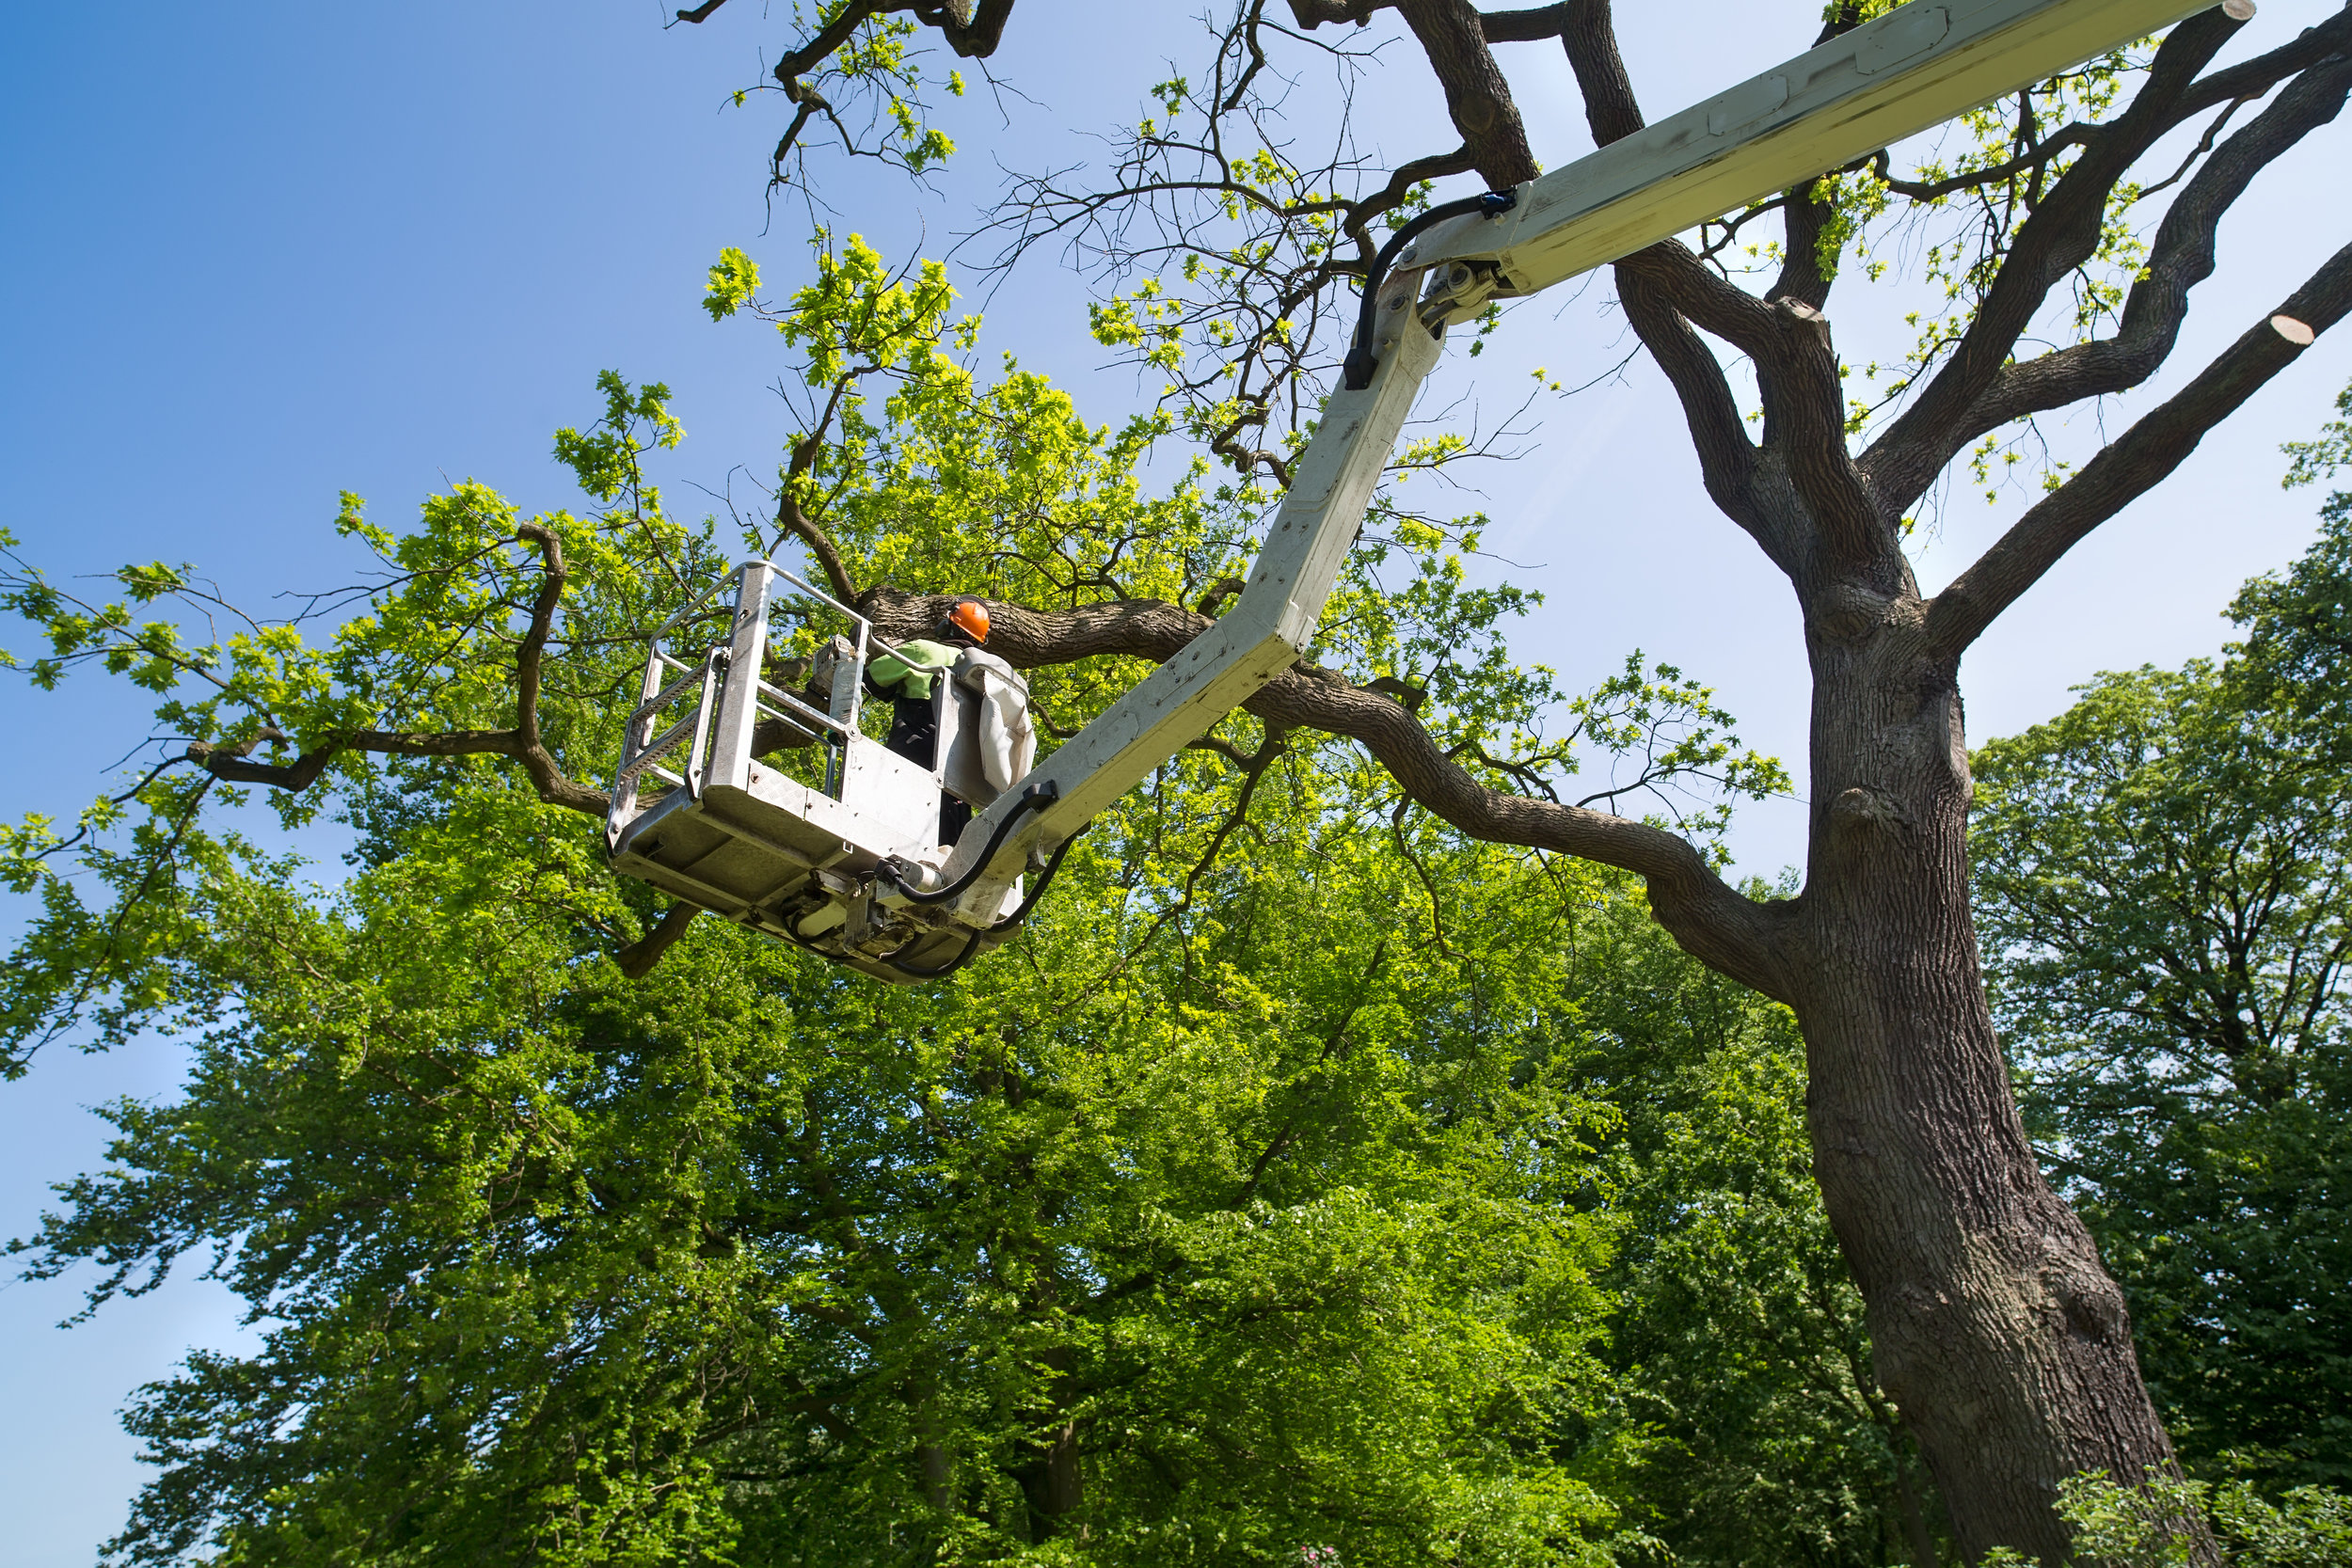 Our services include but are not limited to; - - Tree removal- Stump grinding- Tree trimming- Snow Removal- Planting